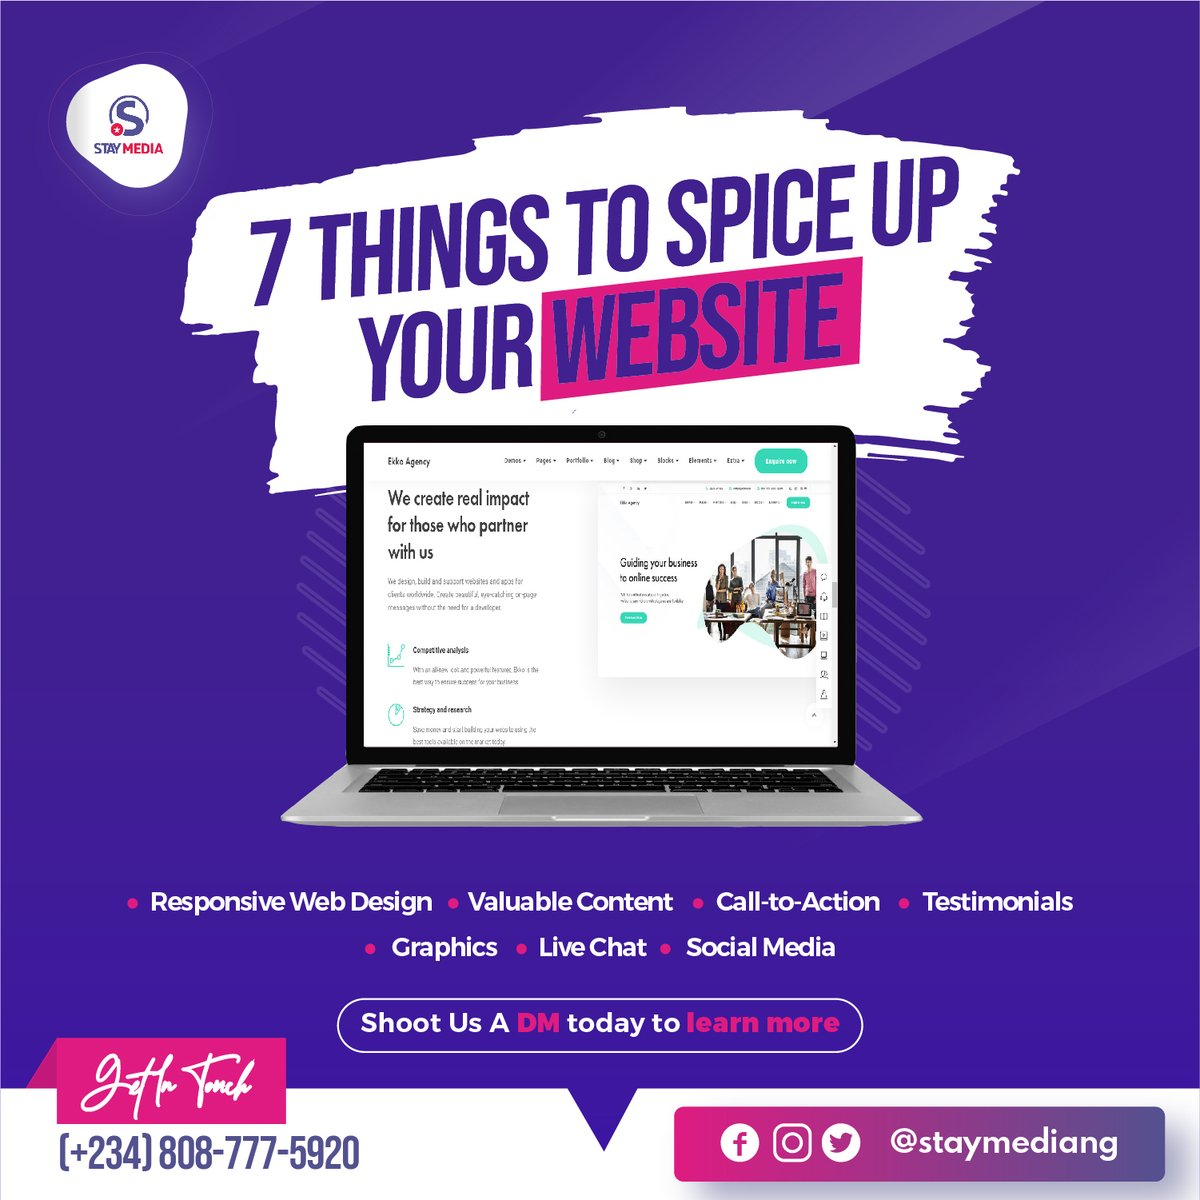 Follow these seven steps, and you can easily attract the attention of your Website visitors and convert them into customers. To learn more shoot us a DM today #staymediang #staymedia #  #wednesdaywisdom #wednesdayvibes #wednesdaymotivation #wednesdayspic.twitter.com/2y11MmofJ2